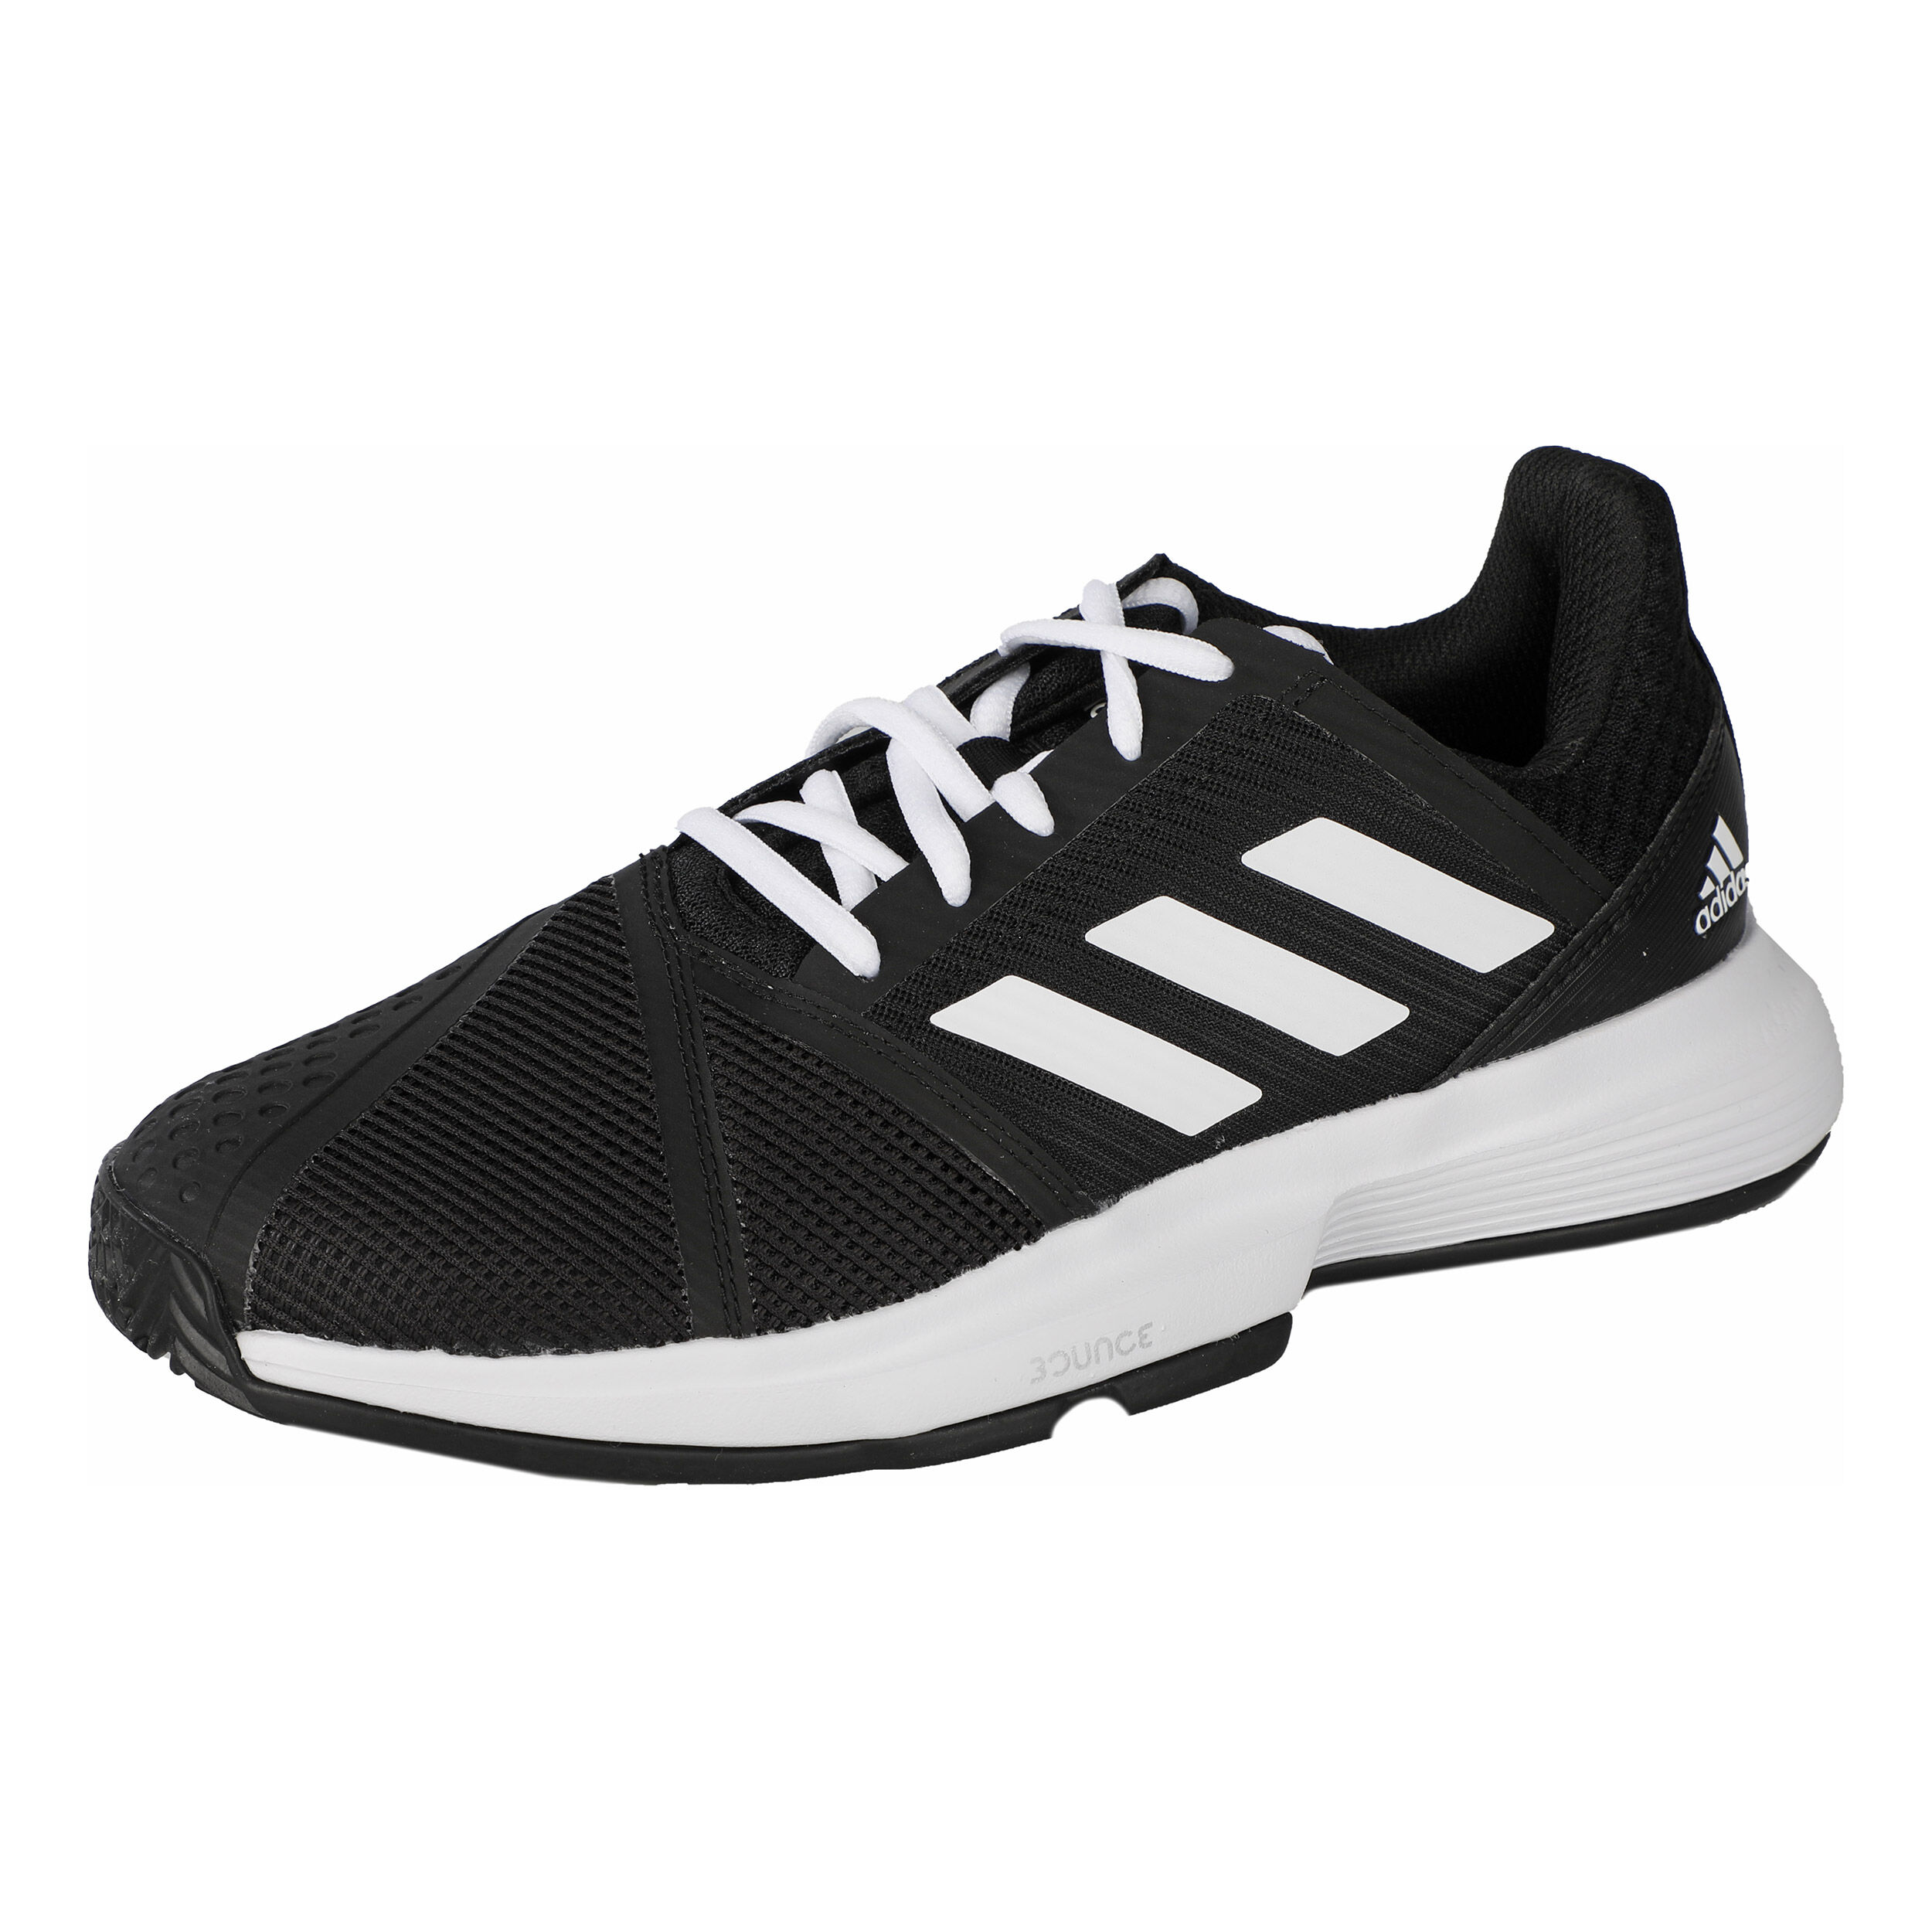 Chaussures Homme adidas CourtJam Bounce NoirBlanc Tennis